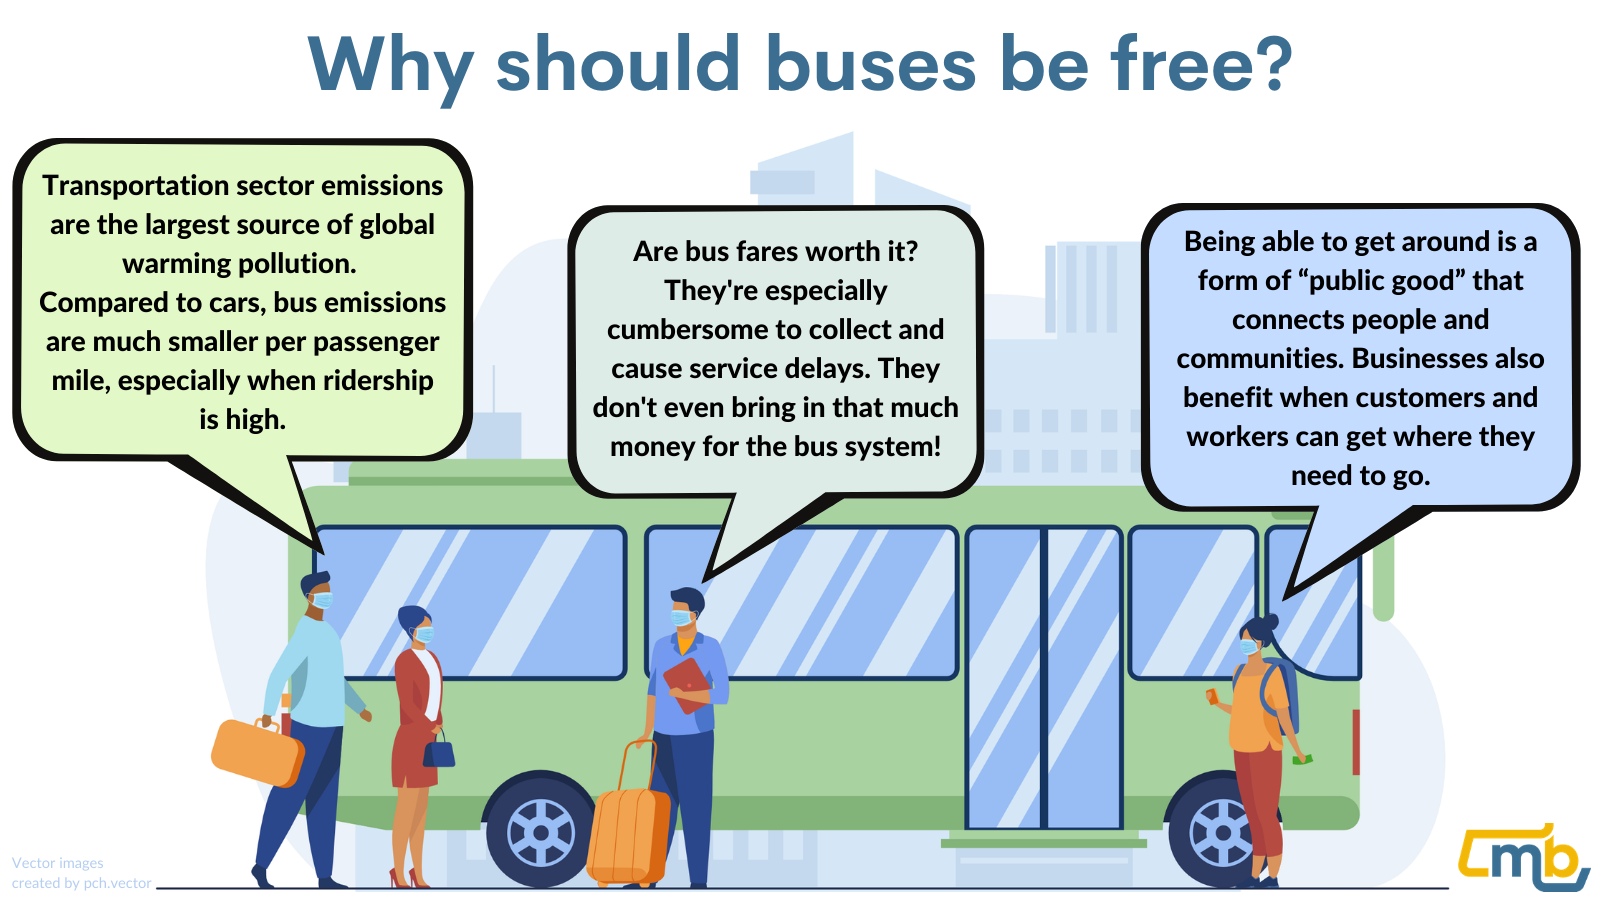 Why should buses be free?